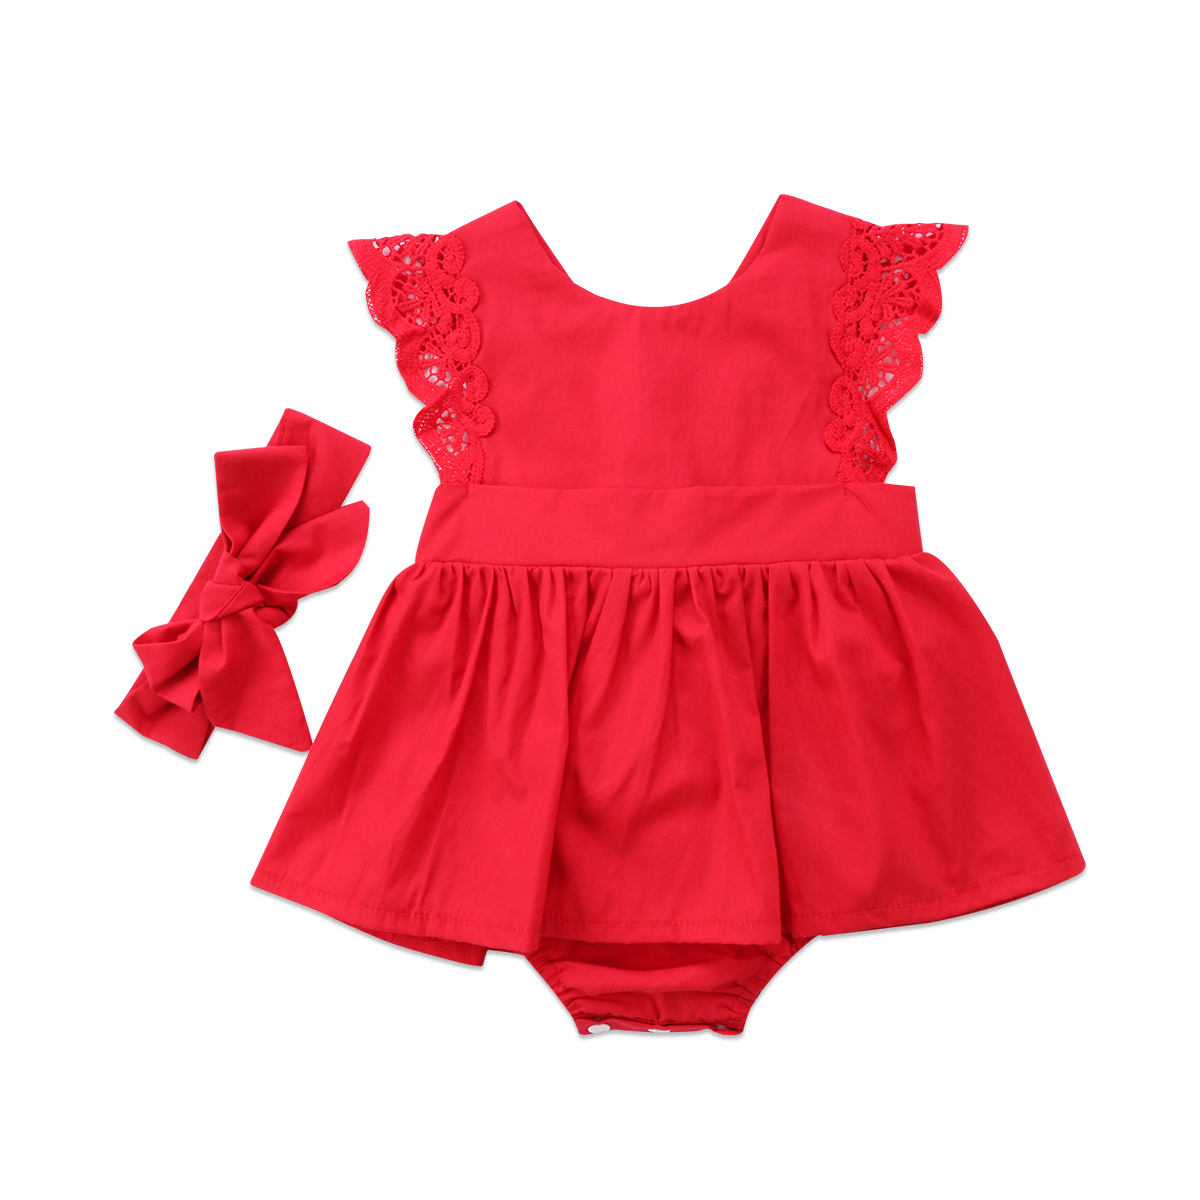 Christmas girl Dress Infant Baby Girls Lace lace Sleeveless Romper Jumpsuit Outfits TuTu Clothe Gift+Headdress 2PCS 0-24M stylish round collar sleeveless lace spliced women s jumpsuit